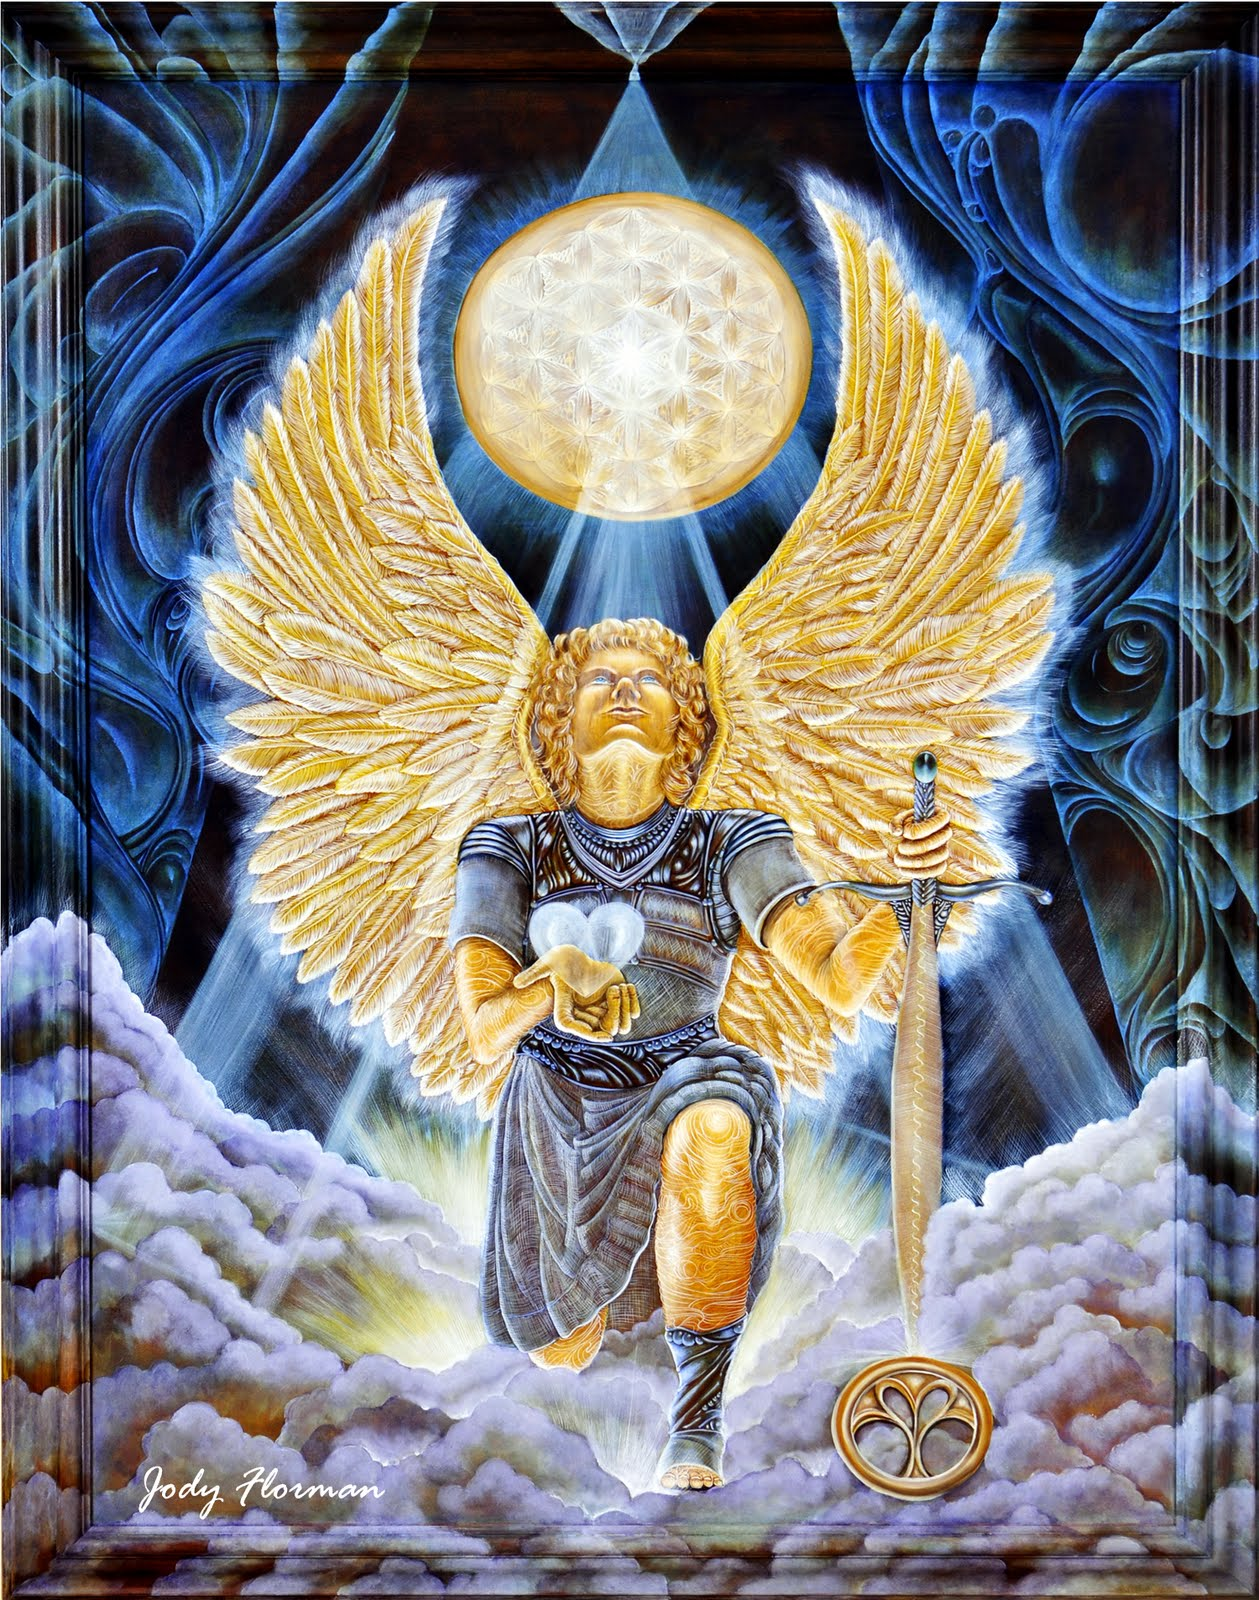 archangel-michael-jody-florman.jpg